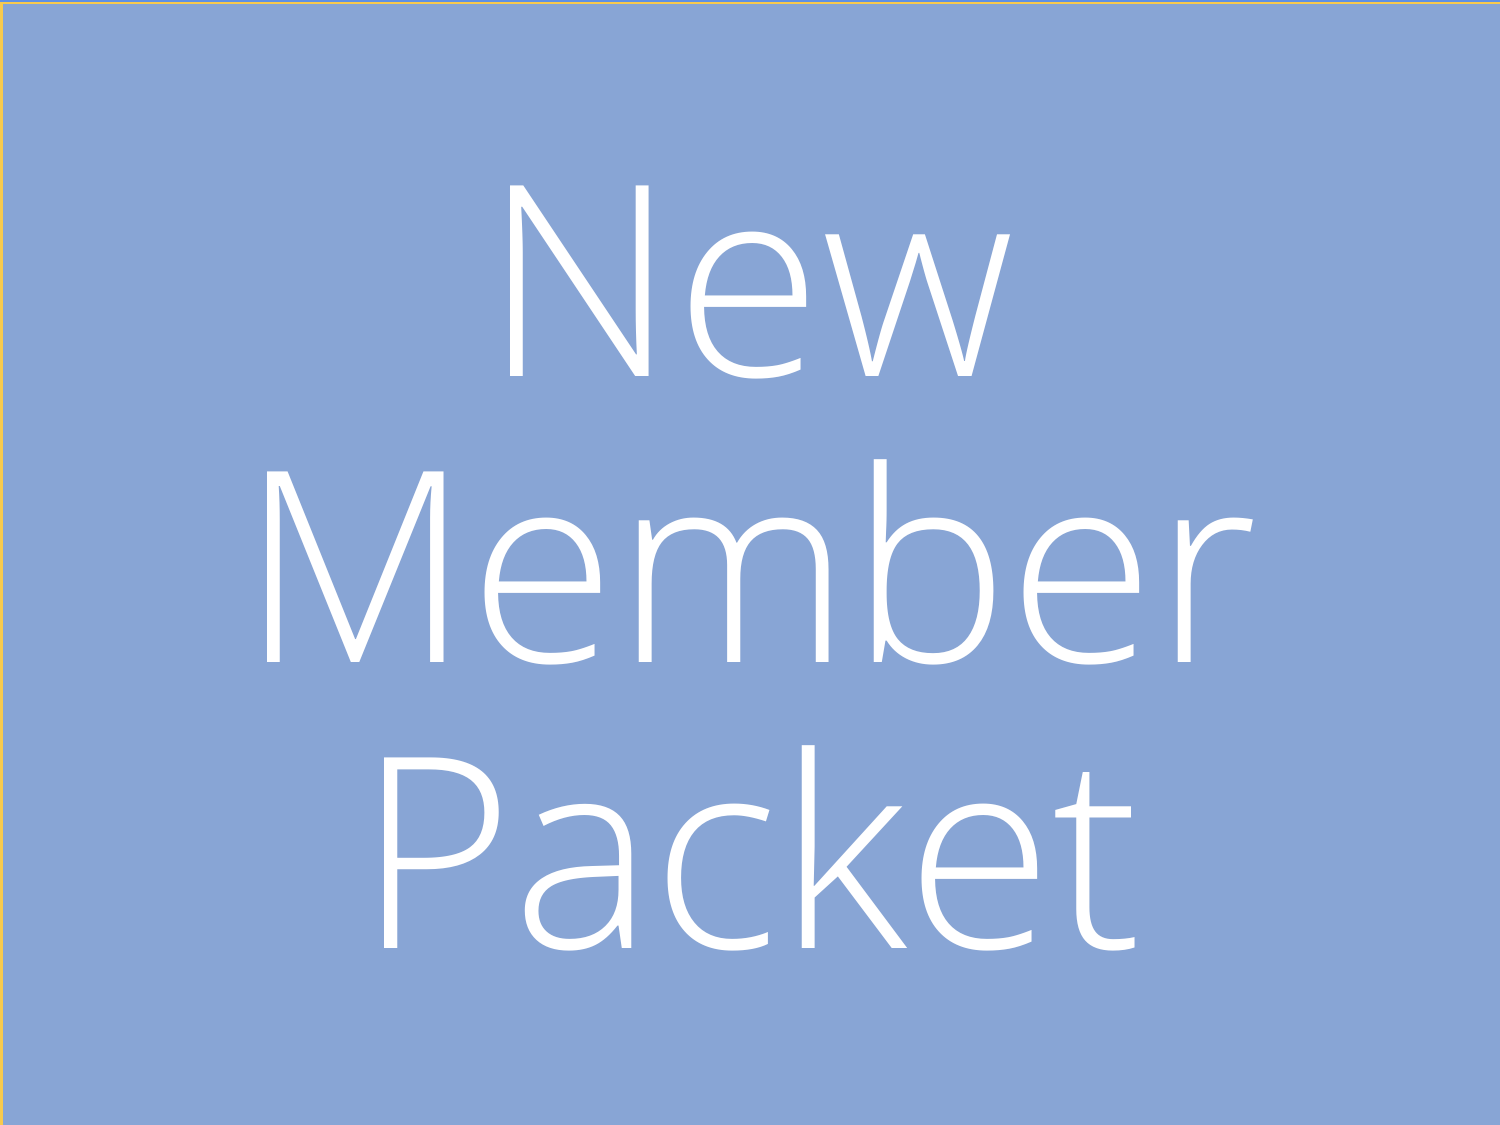 Download materials from the New Member Packet and learn more about WATS